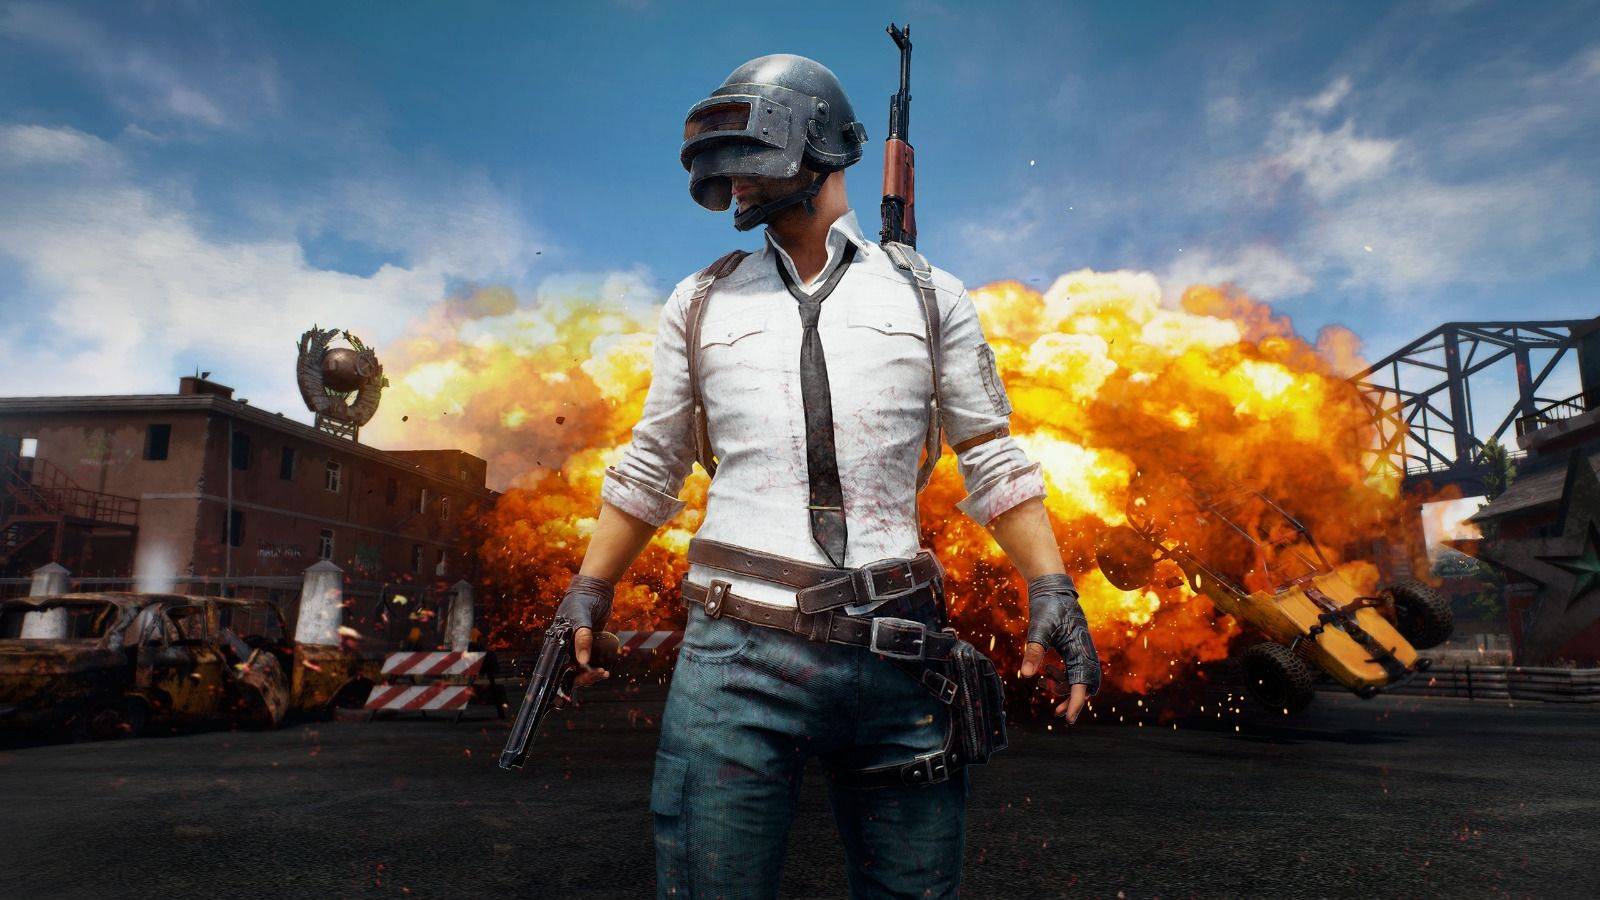 Pubg Theme Song Tofu Ngo Remix By Ghost Remix From Ghost Remix